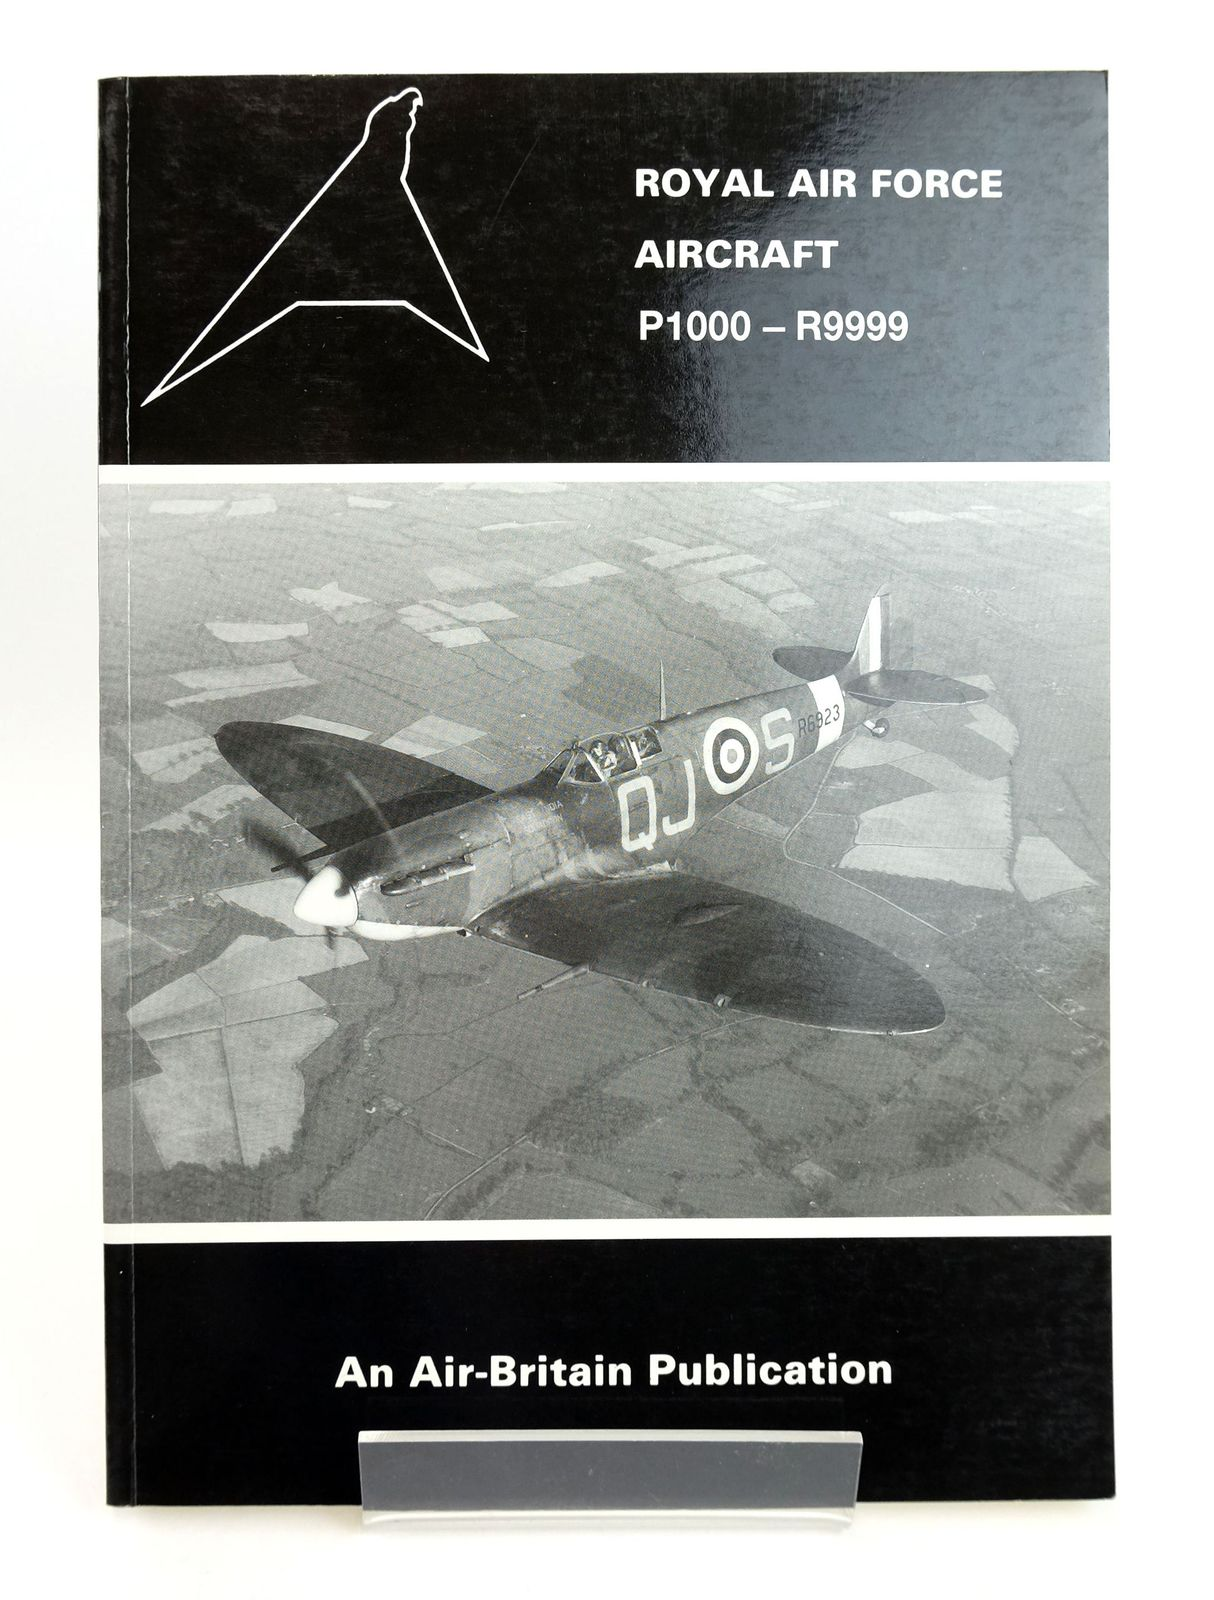 Photo of ROYAL AIR FORCE AIRCRAFT P1000 TO R9999 written by Halley, James J. published by Air-Britain (Historians) Ltd. (STOCK CODE: 1819032)  for sale by Stella & Rose's Books